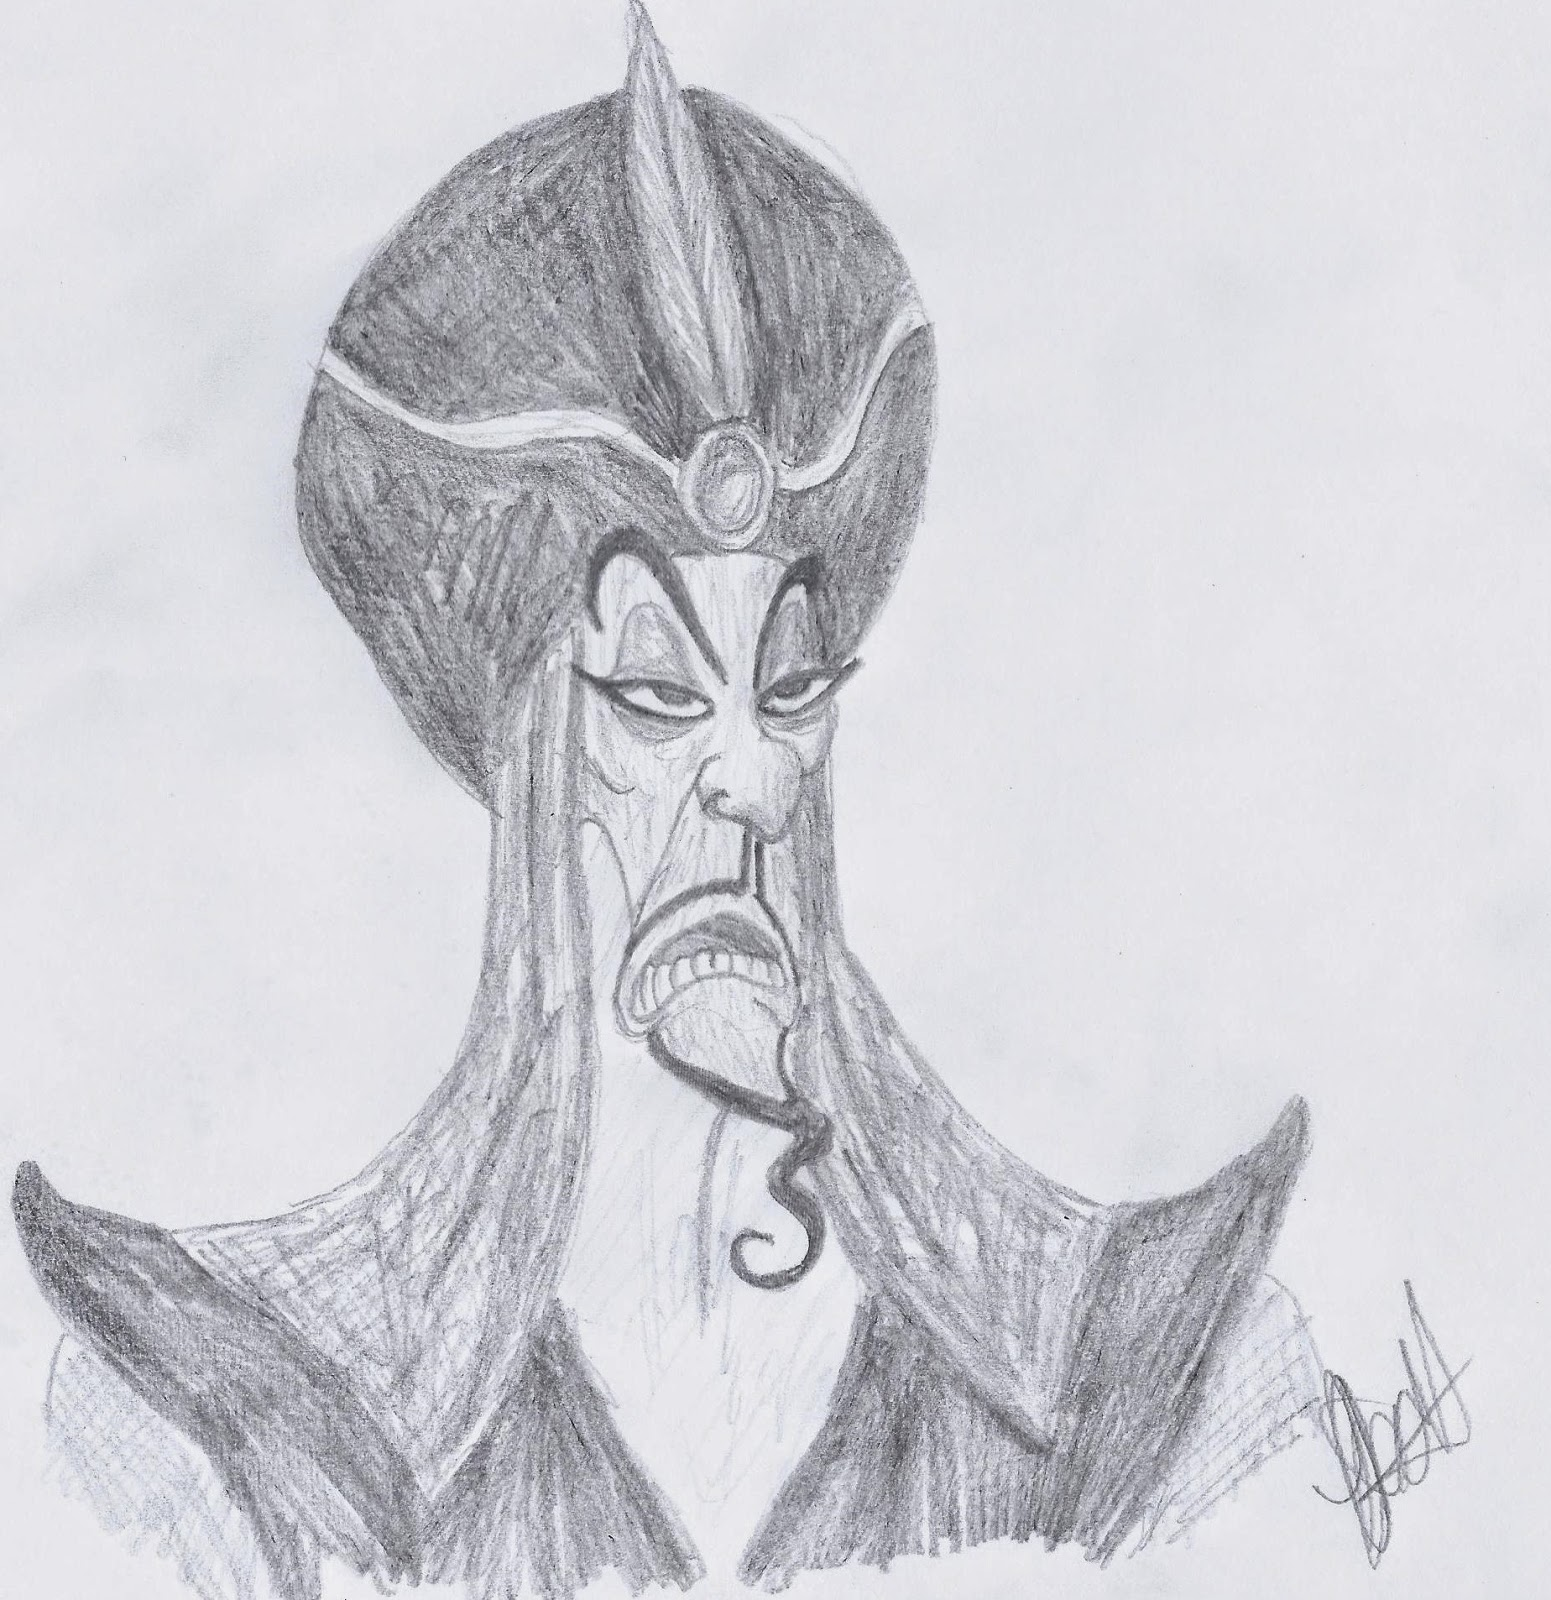 Disney Study: Jafar from Aladdin, www.JoLinsdell.com #Disney #Sketches